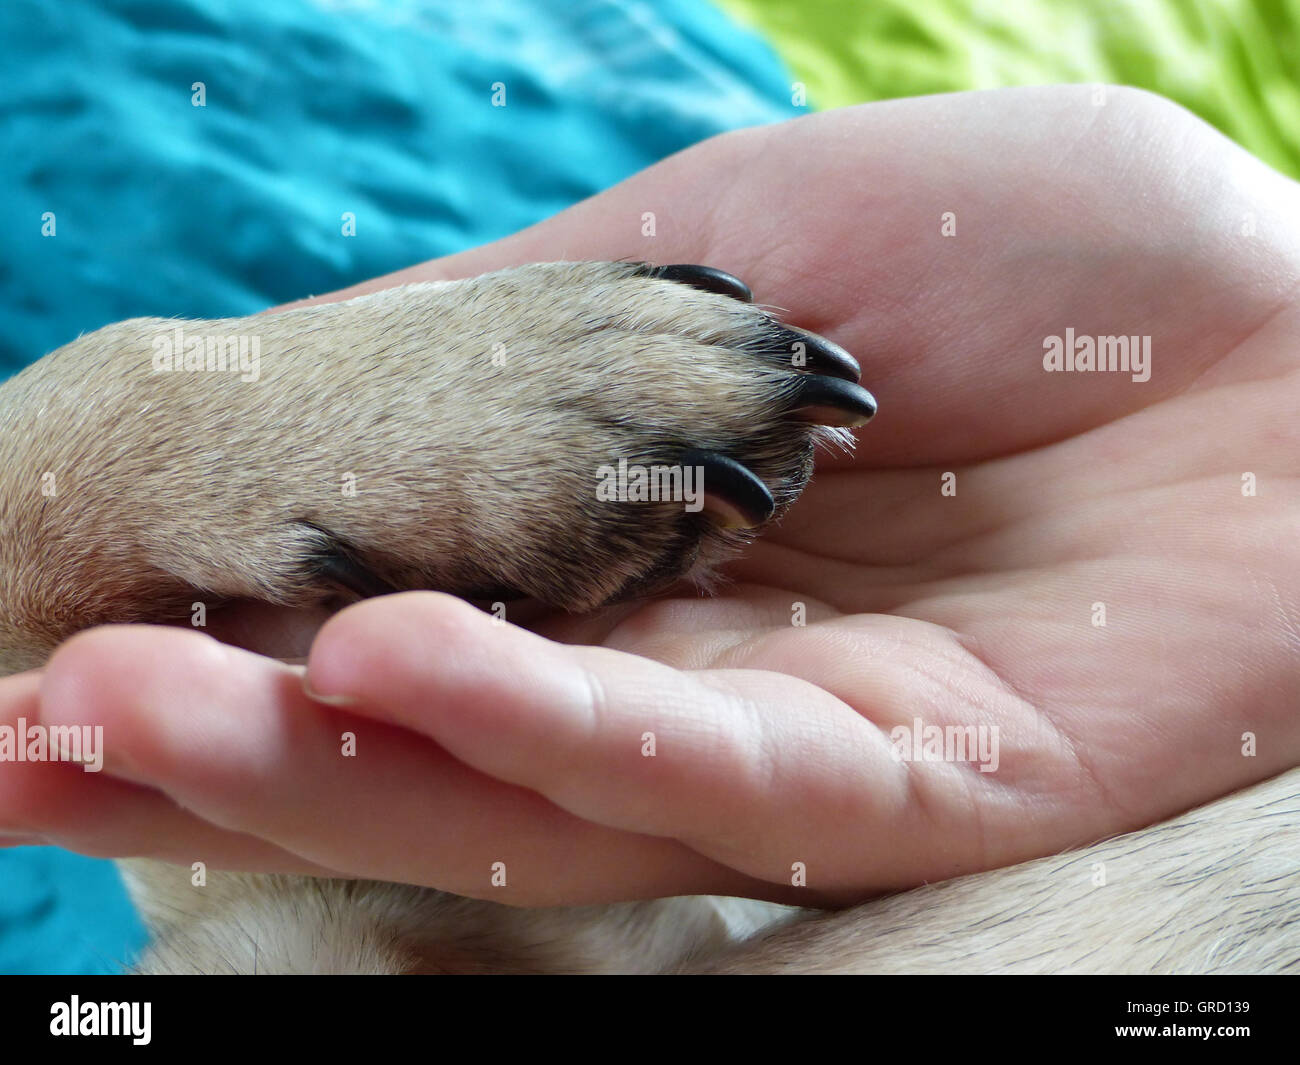 Dog paw is in human hand dog gives paw symbol for friendship dog paw is in human hand dog gives paw symbol for friendship detail biocorpaavc Images